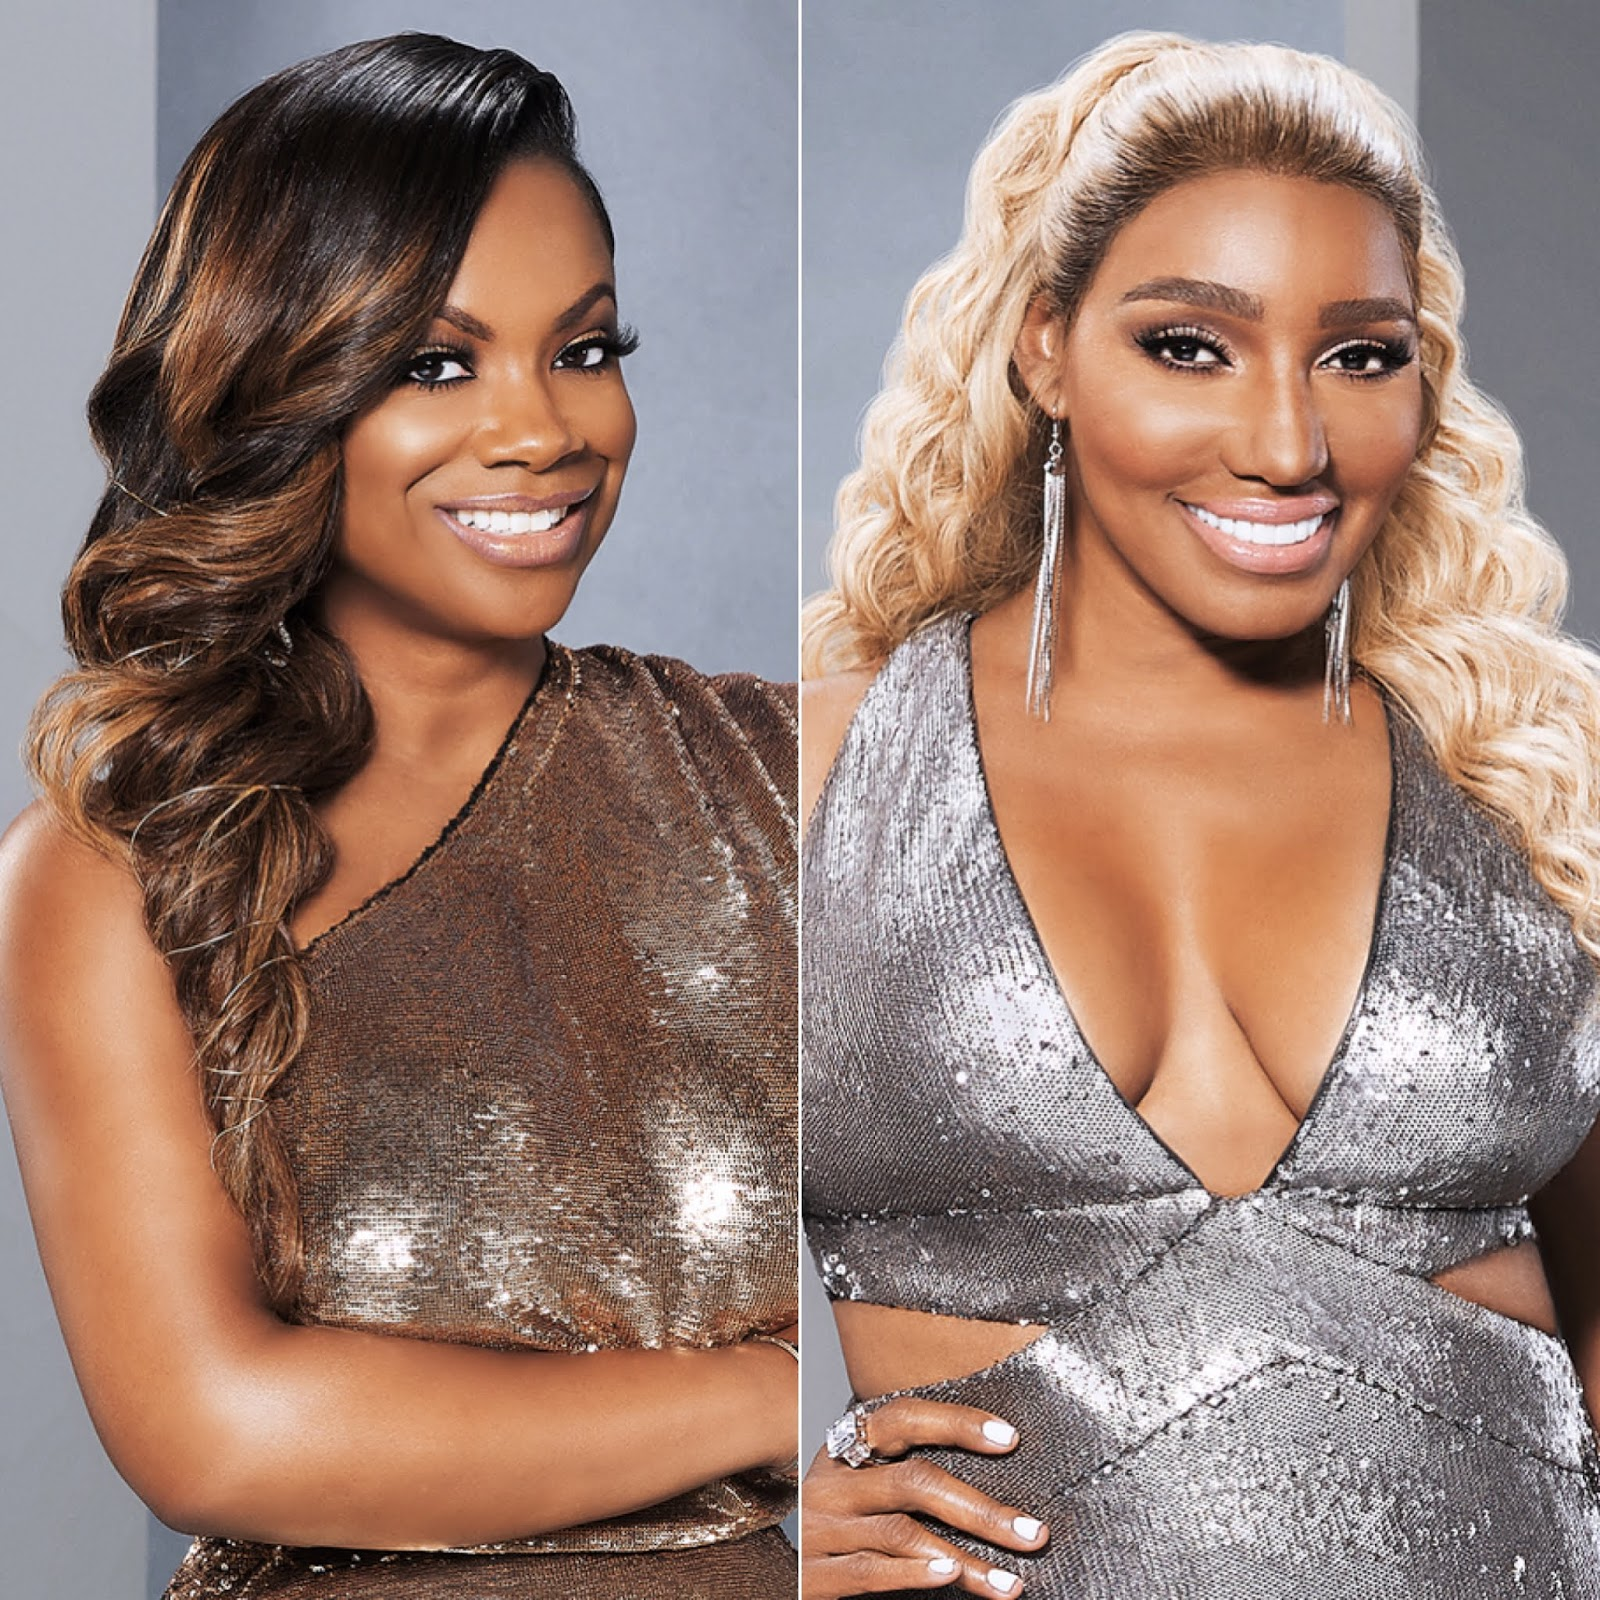 Kandi Burruss Just Confirmed That NeNe Leakes Wants TO Make Things Better With The RHOA Cast